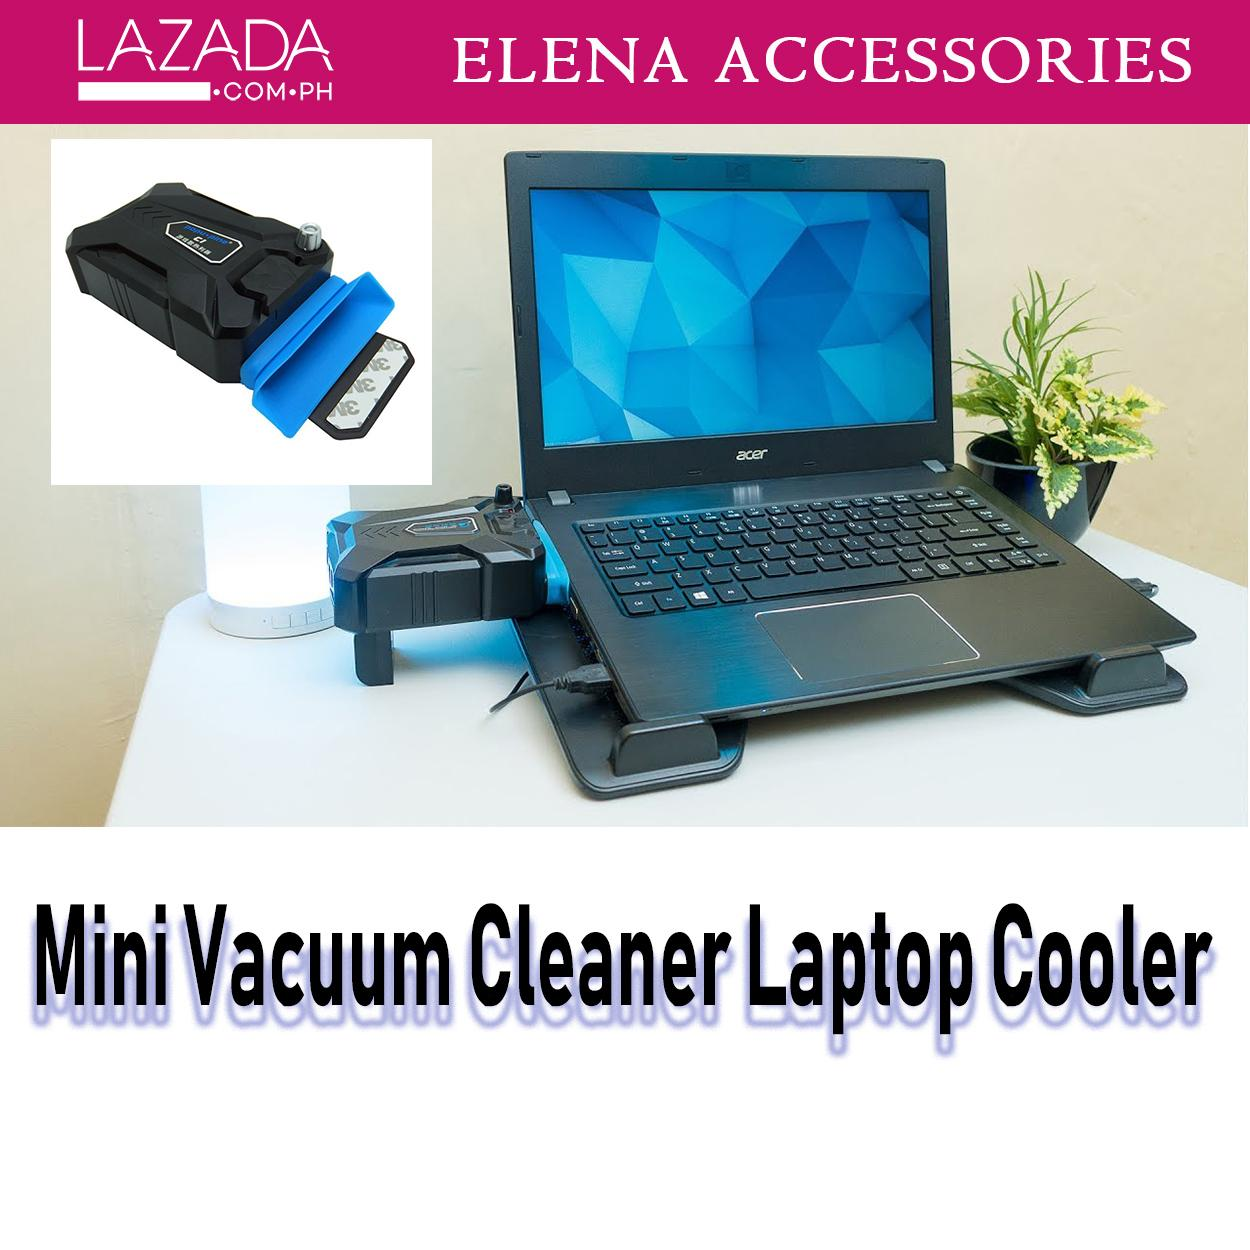 Computer Cooling Stands For Sale Pc Pad Prices Brands Notebook 14 15 Portable Laptop Usb Fan Air Cooler Speed Adjustable Vacuumblack